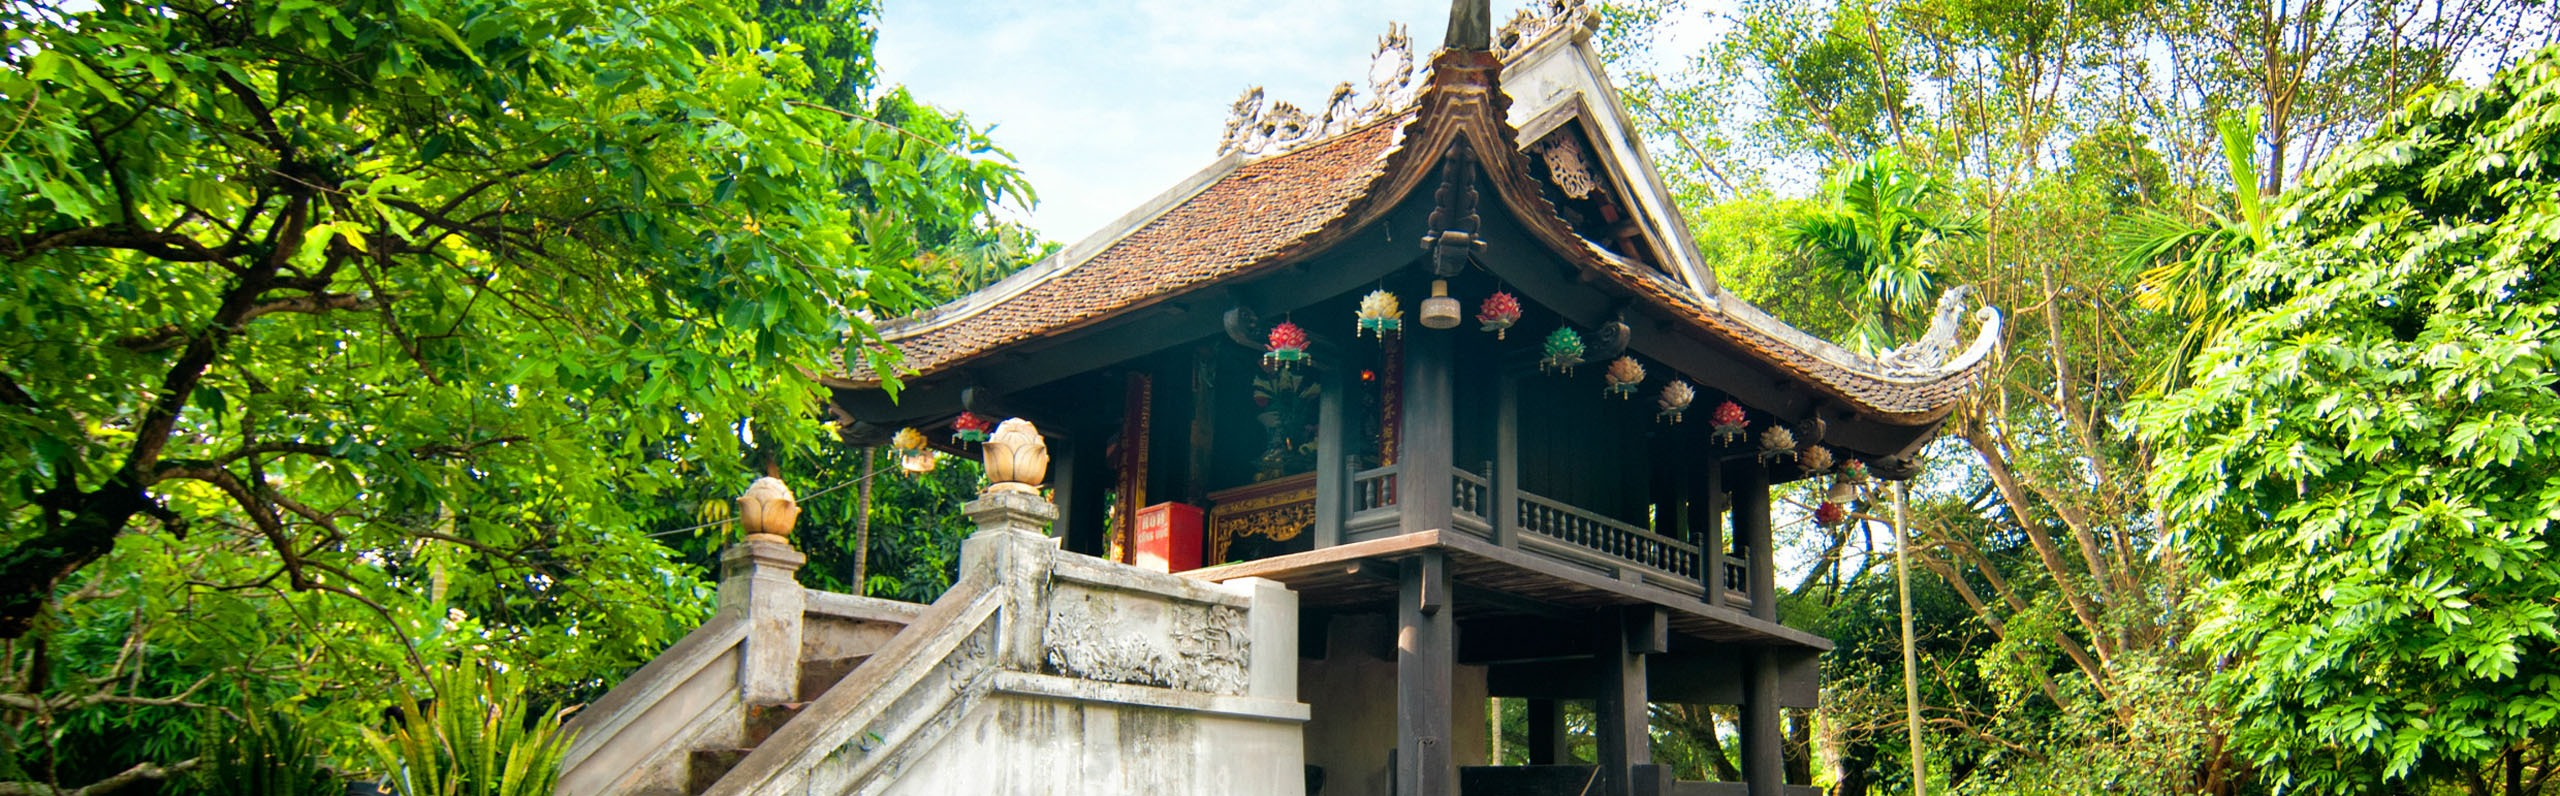 Top 8 Things to Do in Hoi An